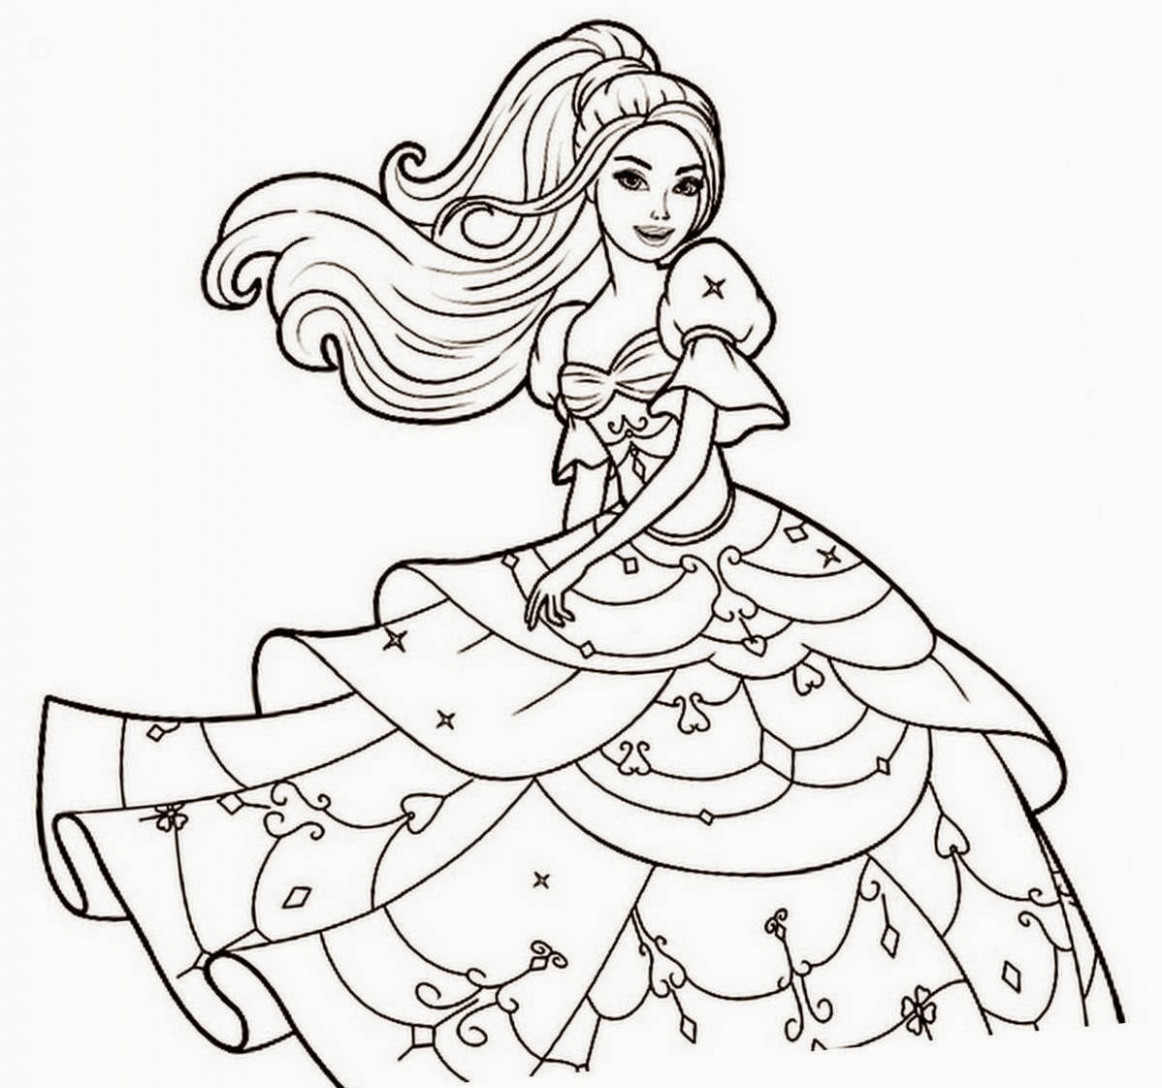 Barbie Color BookProject Awesomebarbie Colouring Book - All About Of ..